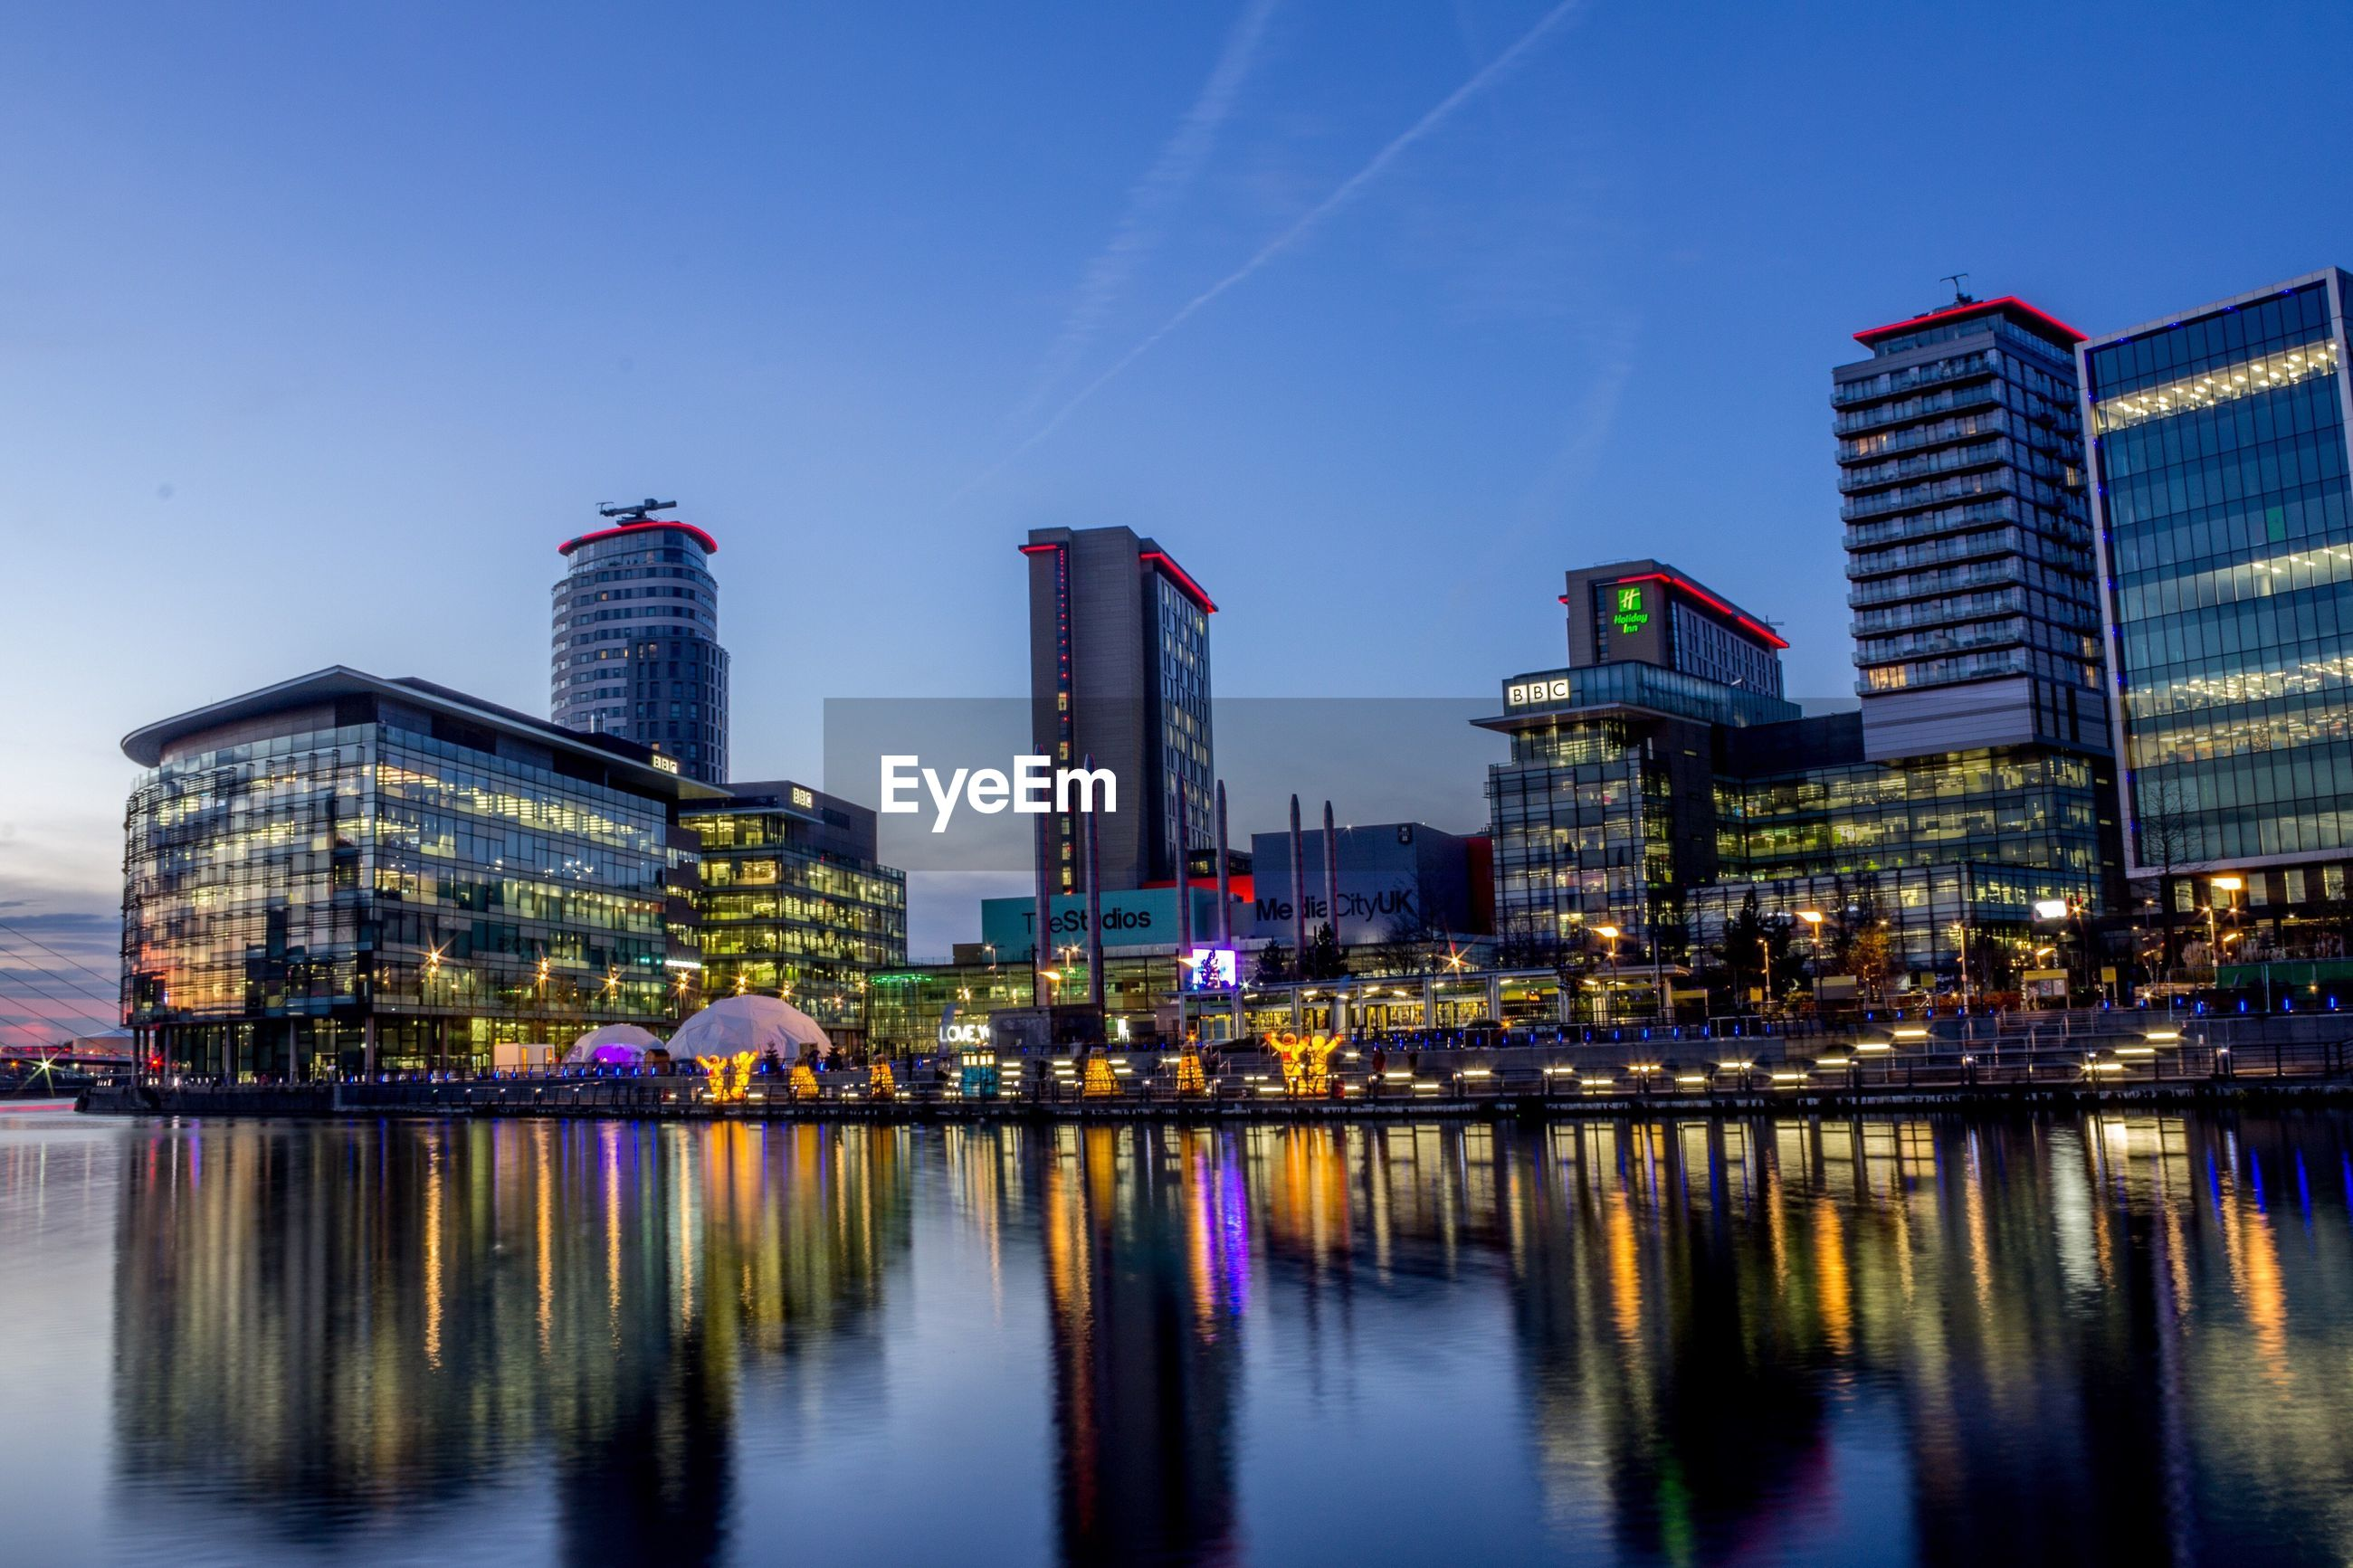 reflection, illuminated, city, building exterior, architecture, night, waterfront, skyscraper, urban skyline, built structure, modern, water, outdoors, travel destinations, bridge - man made structure, river, cityscape, sky, no people, nautical vessel